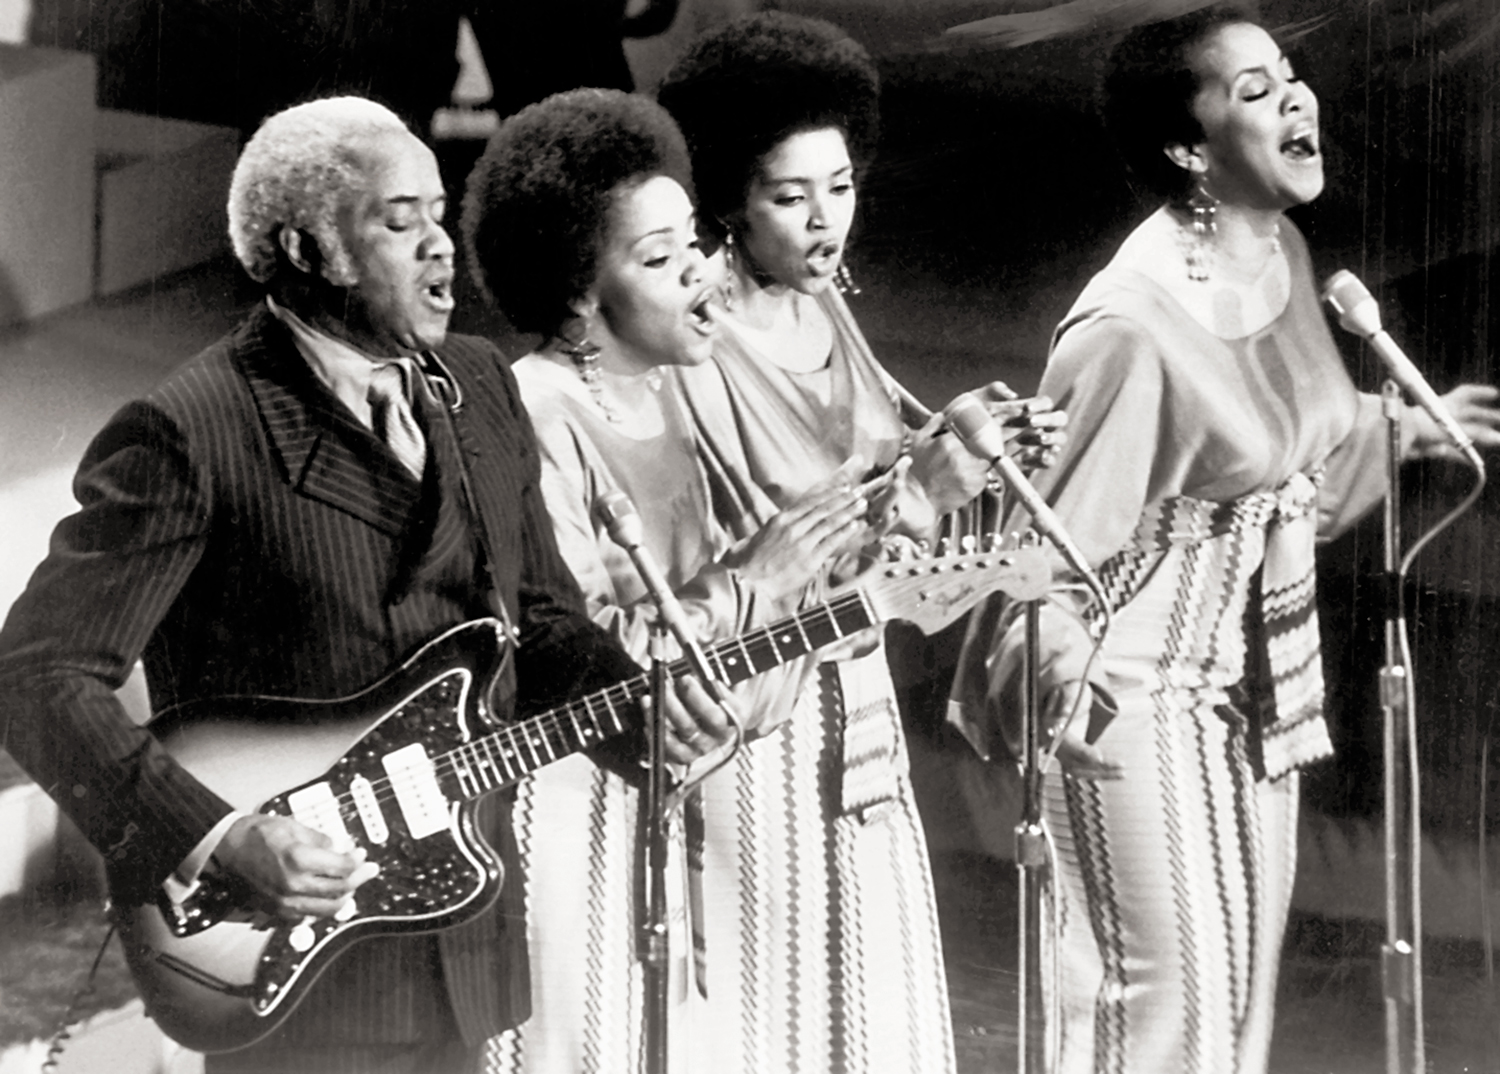 Pops-Cleo-Yvonne-and-Mavis-Staples-perform-in-a-church